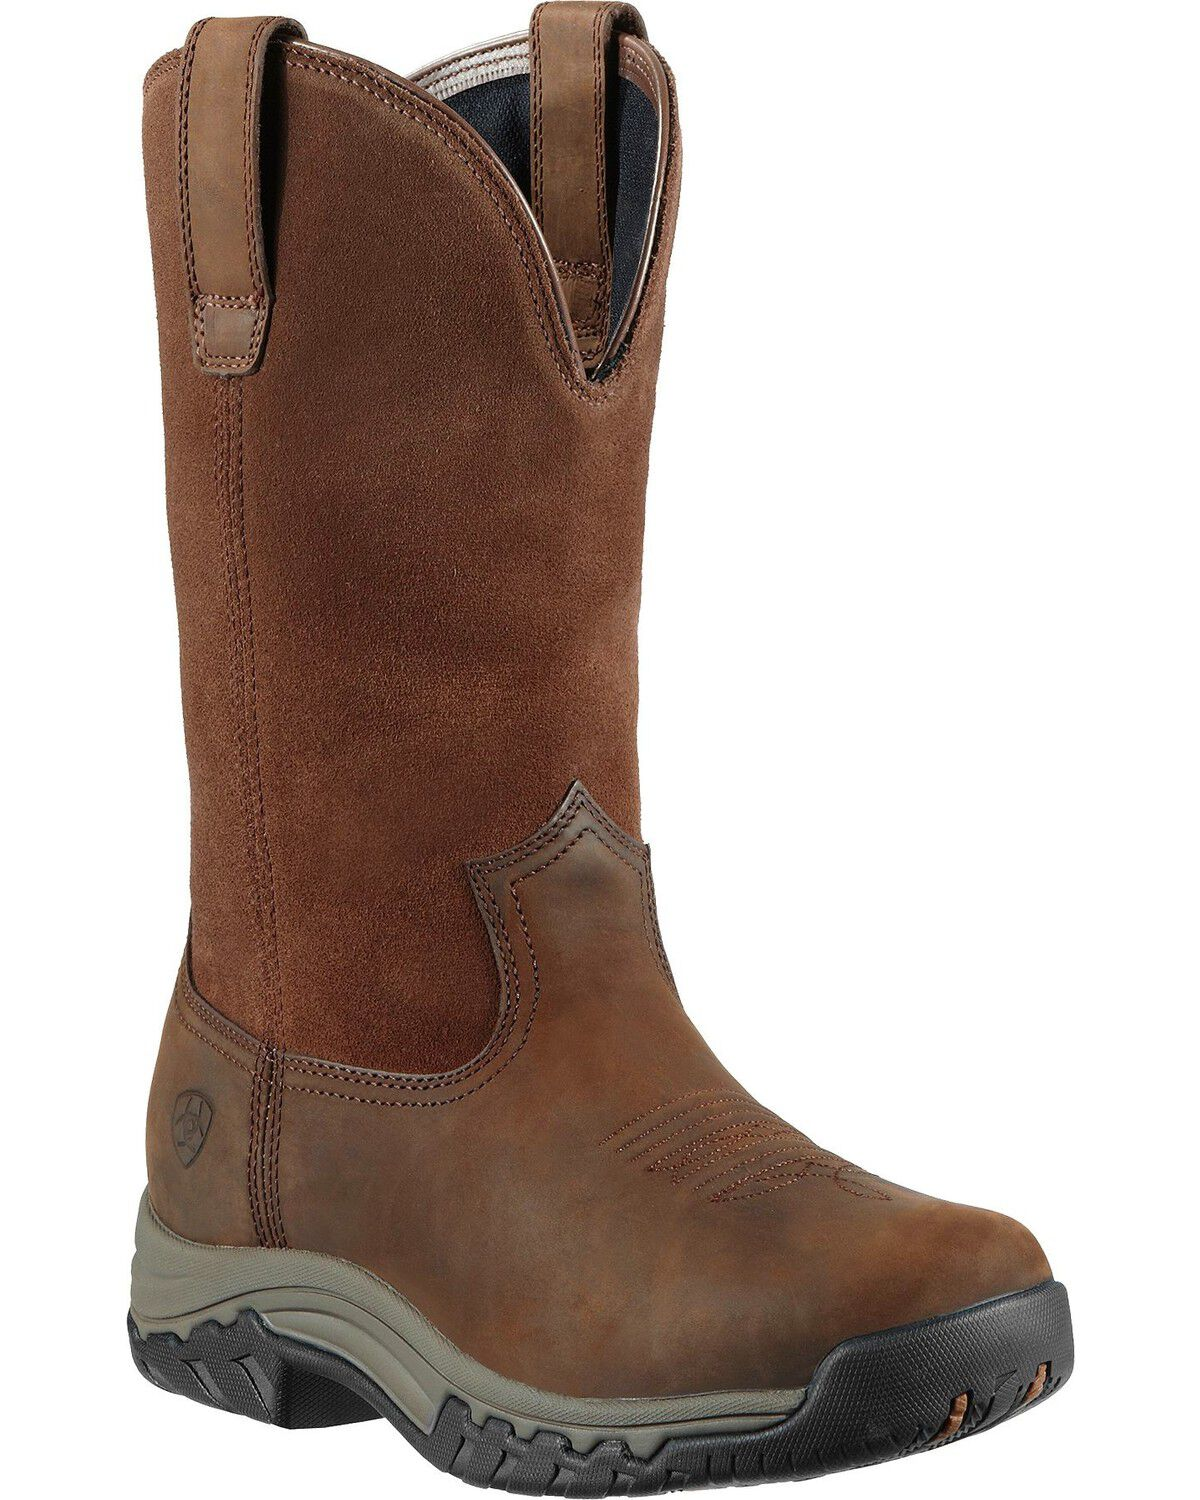 Fashion week Womens Ariat steel toe boots for girls